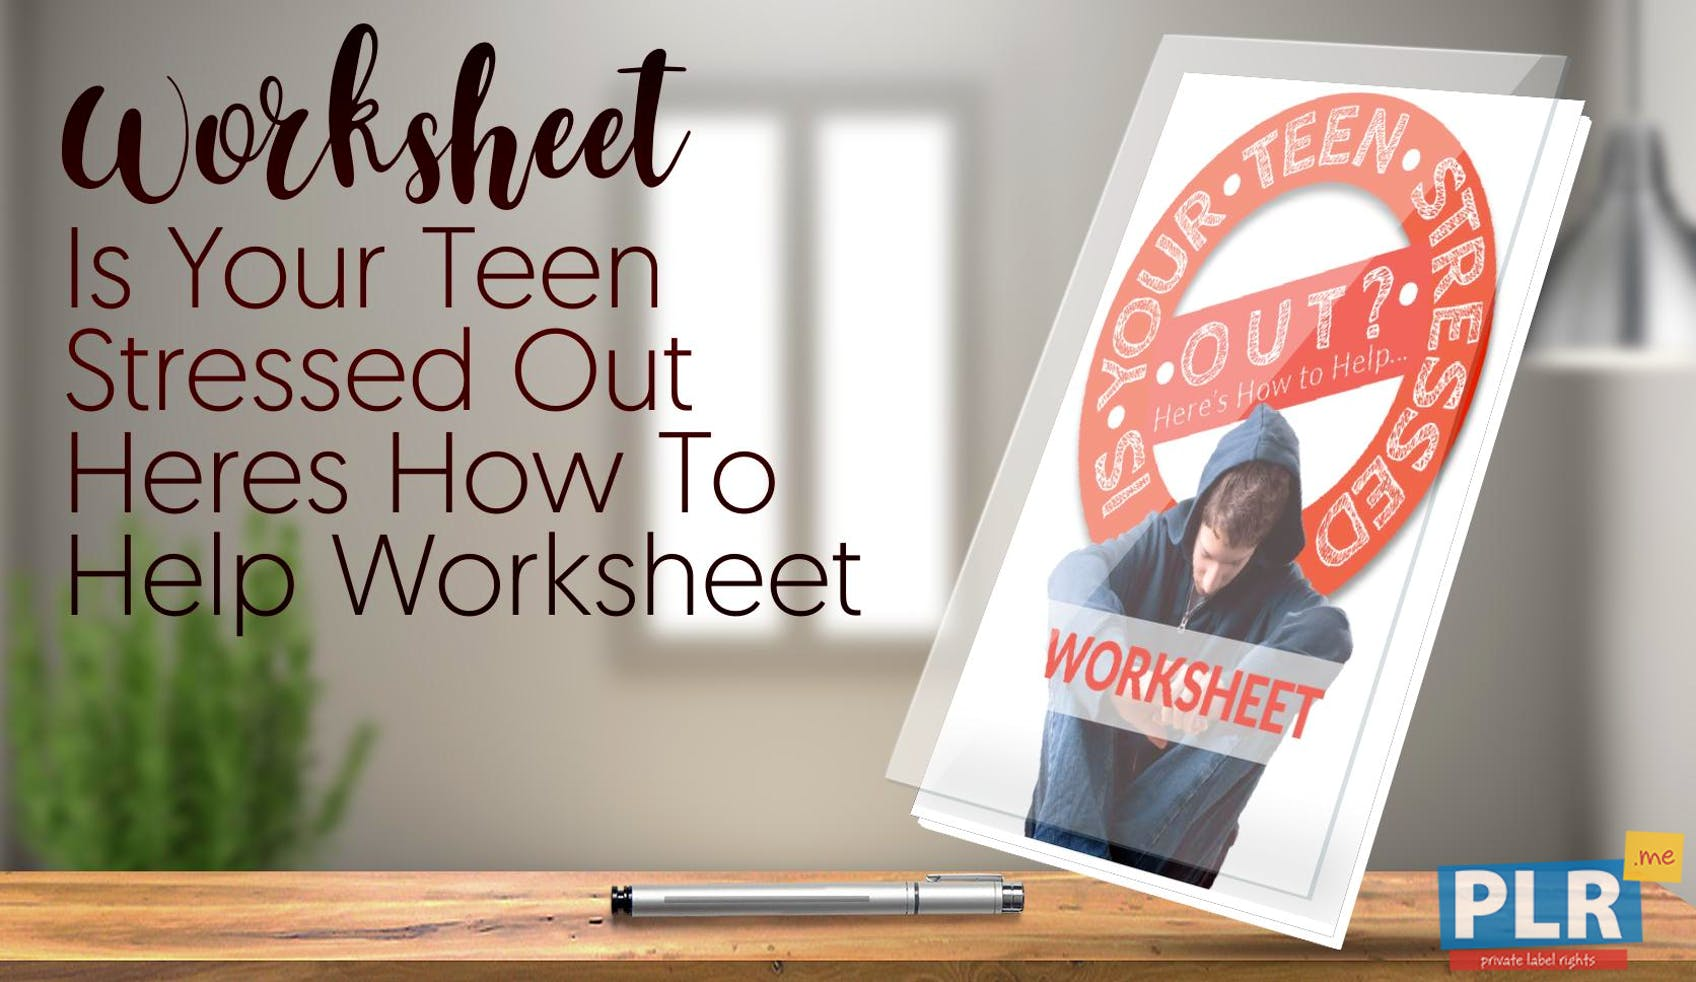 Is Your Teen Stressed Out Heres How To Help Worksheet